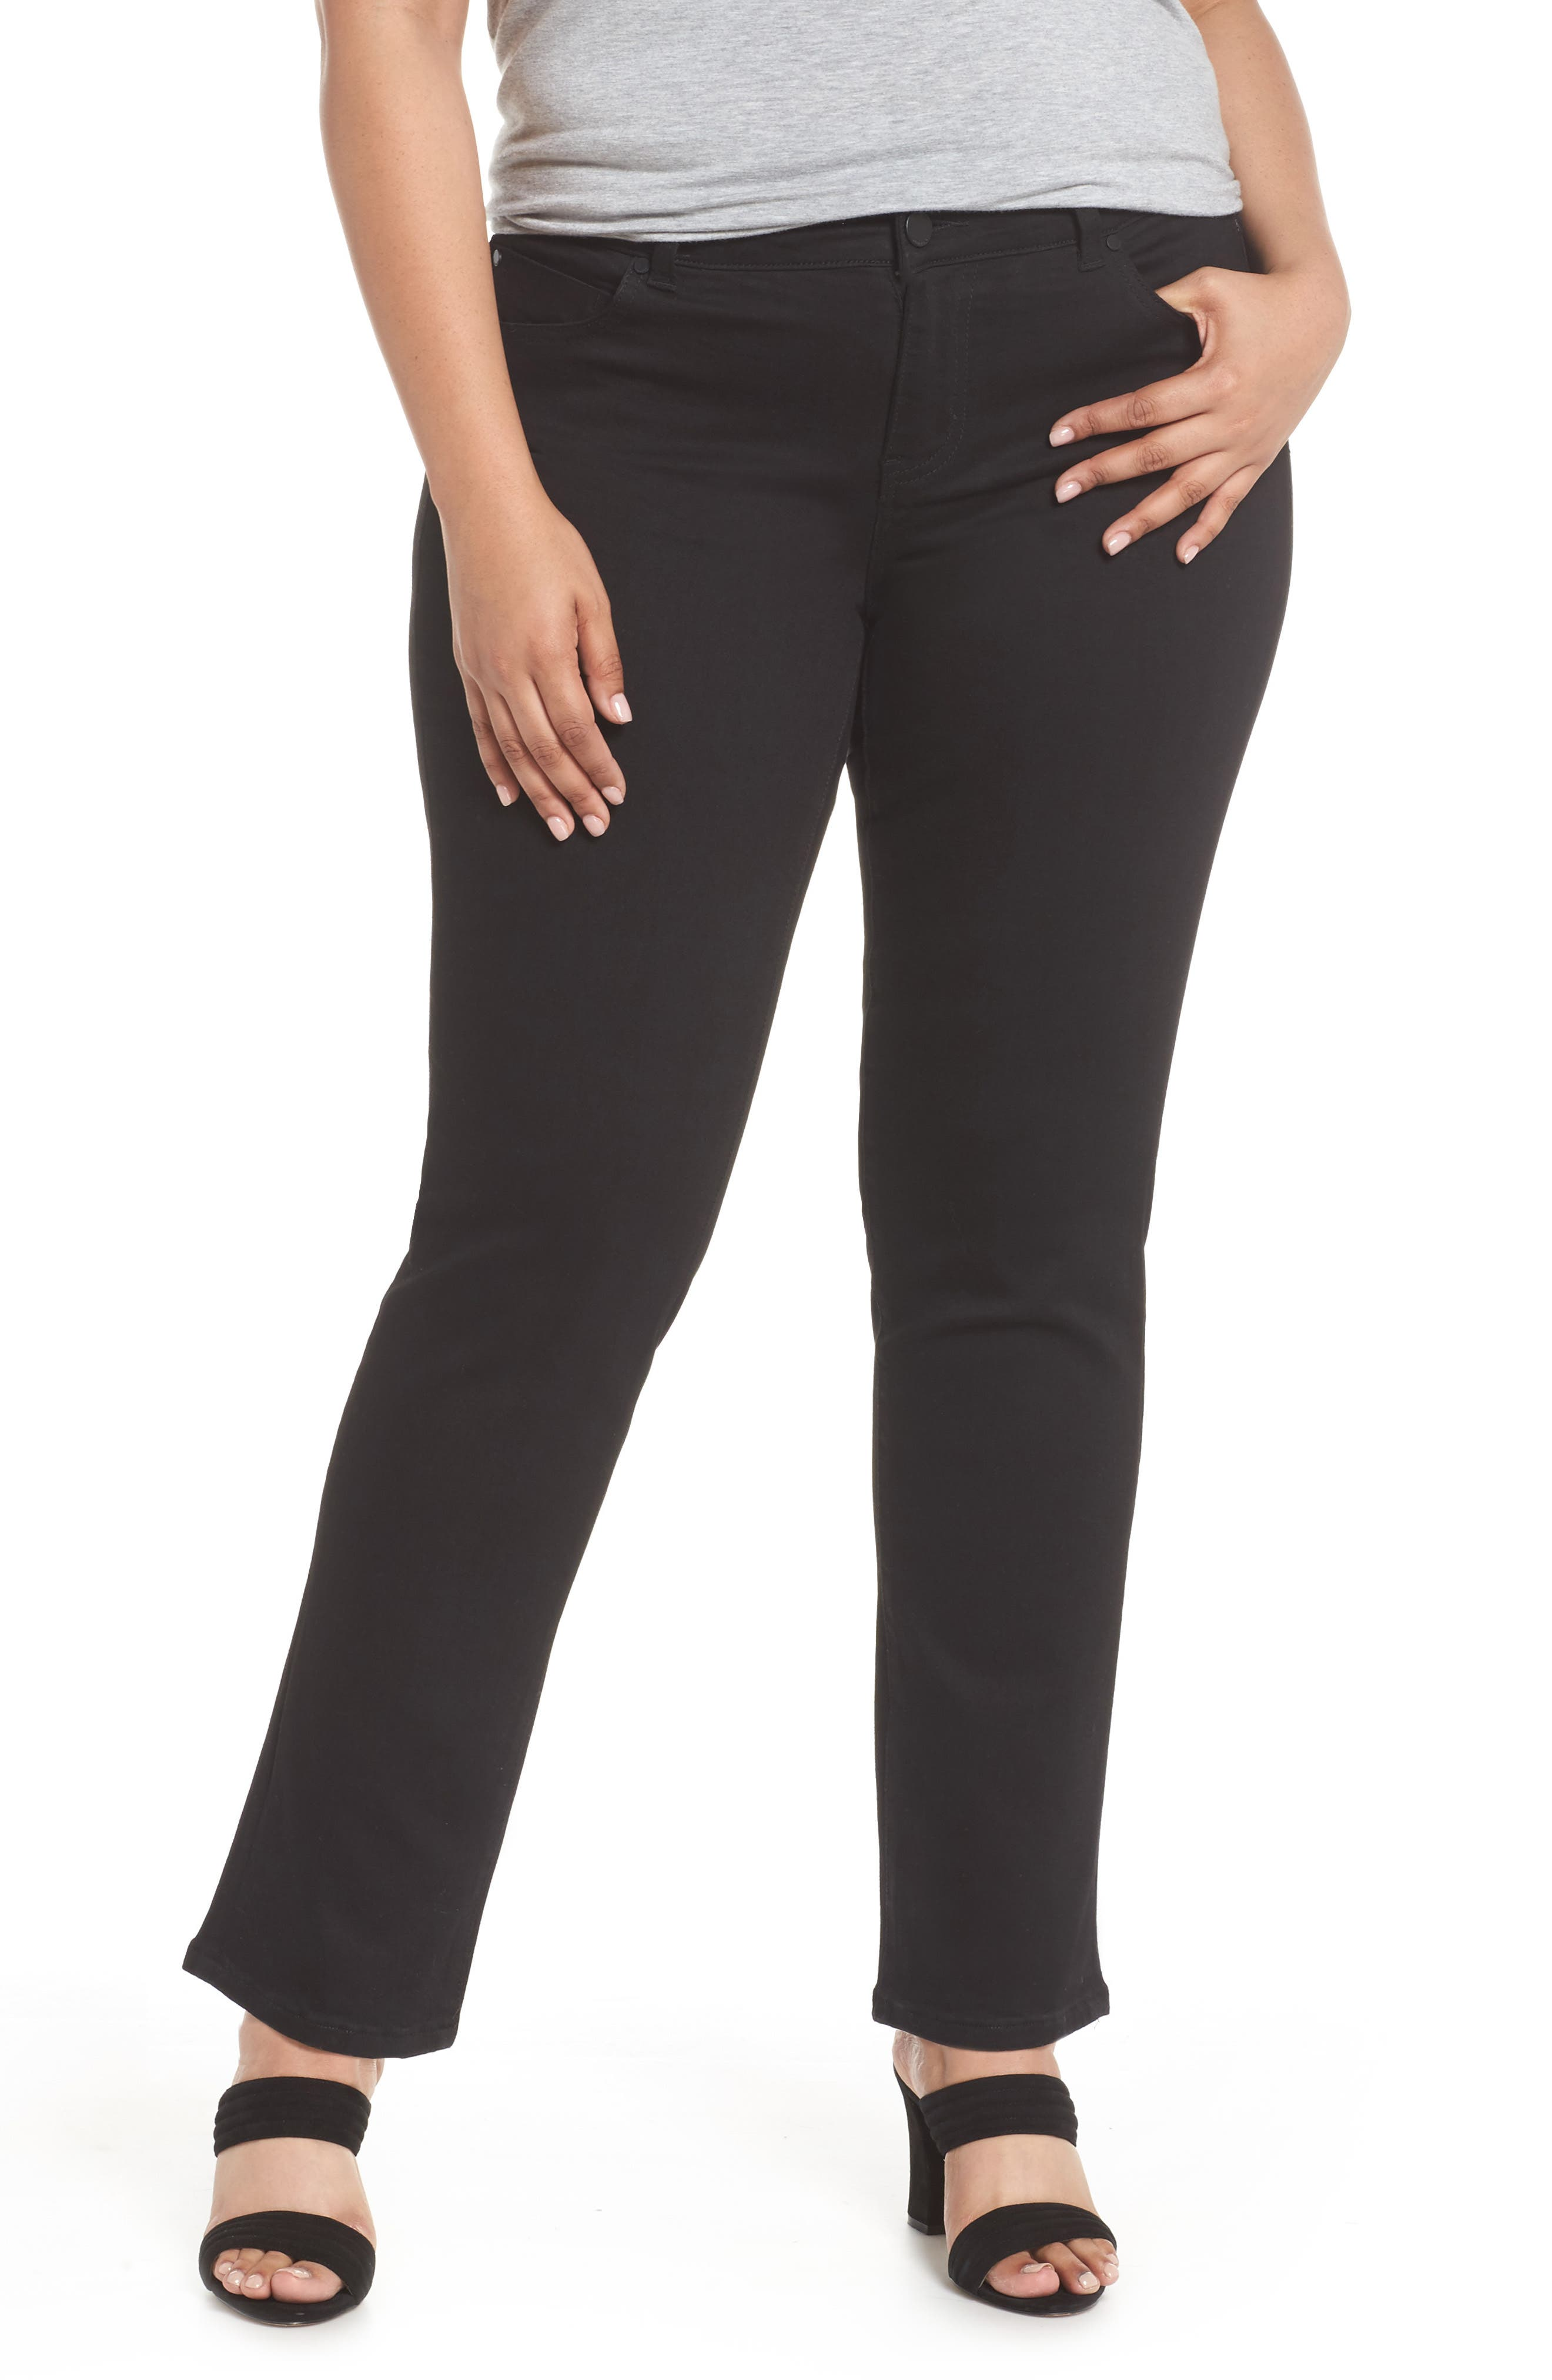 Sadie Stretch Straight Jeans,                             Main thumbnail 1, color,                             BLACK RINSE